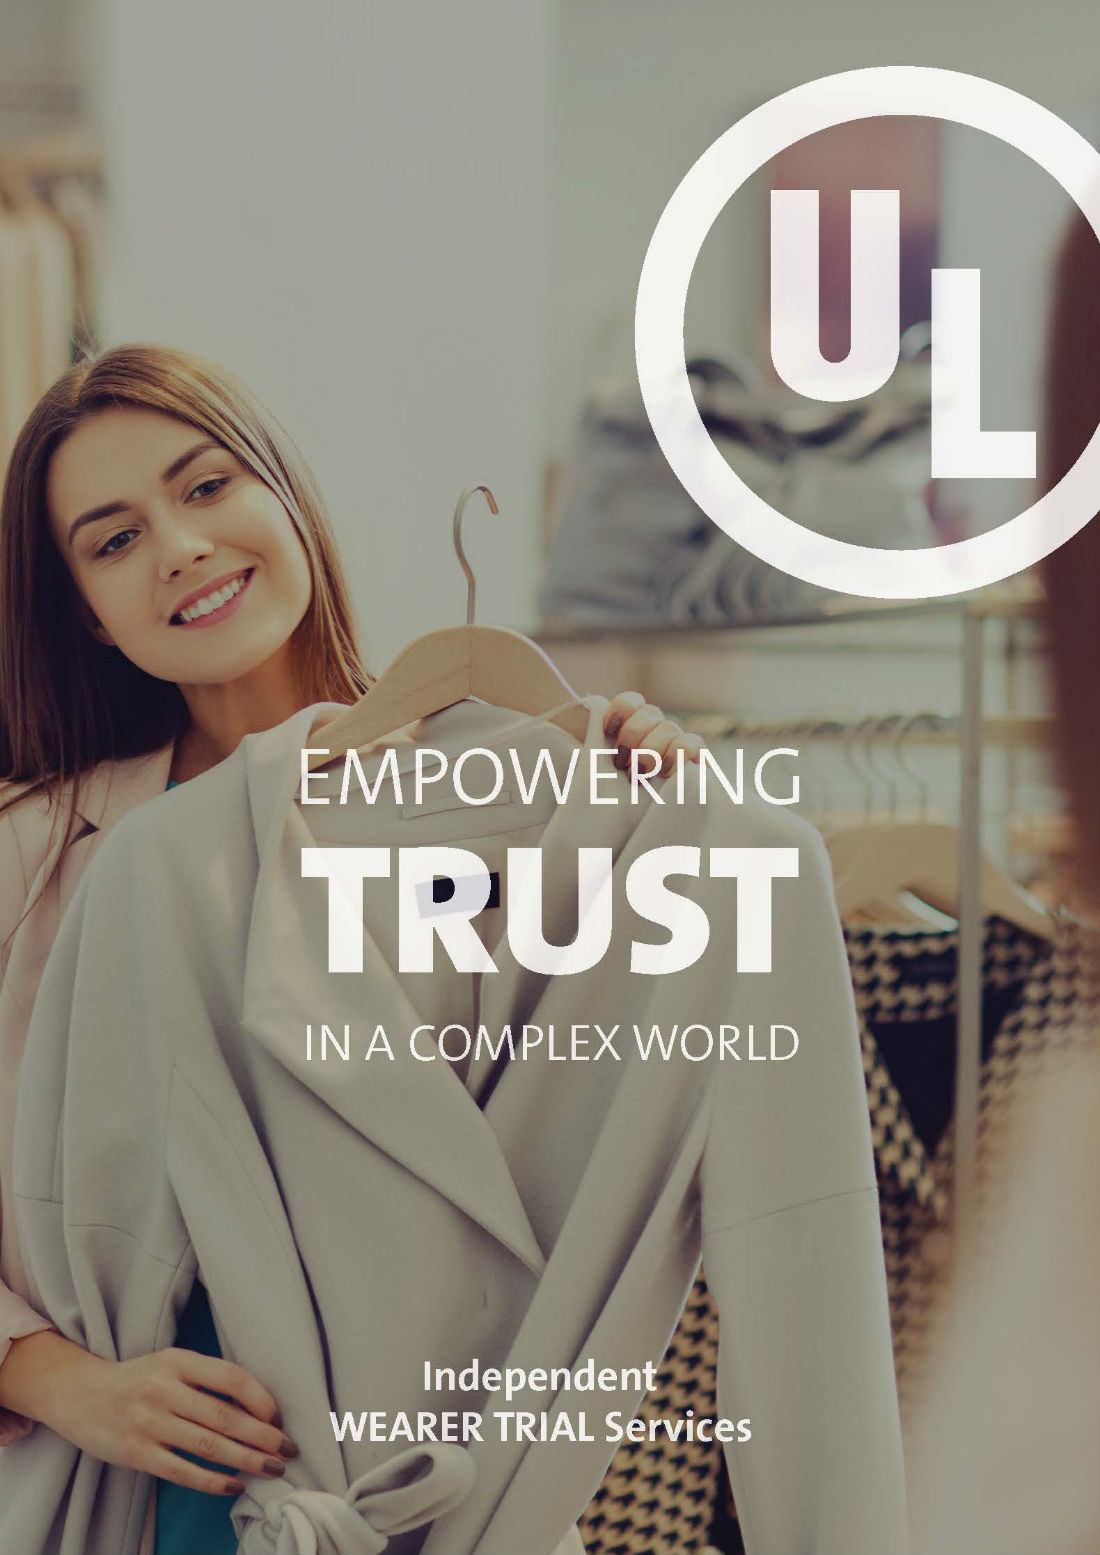 Thumbnail cover - Empowering Trust in a Complex World